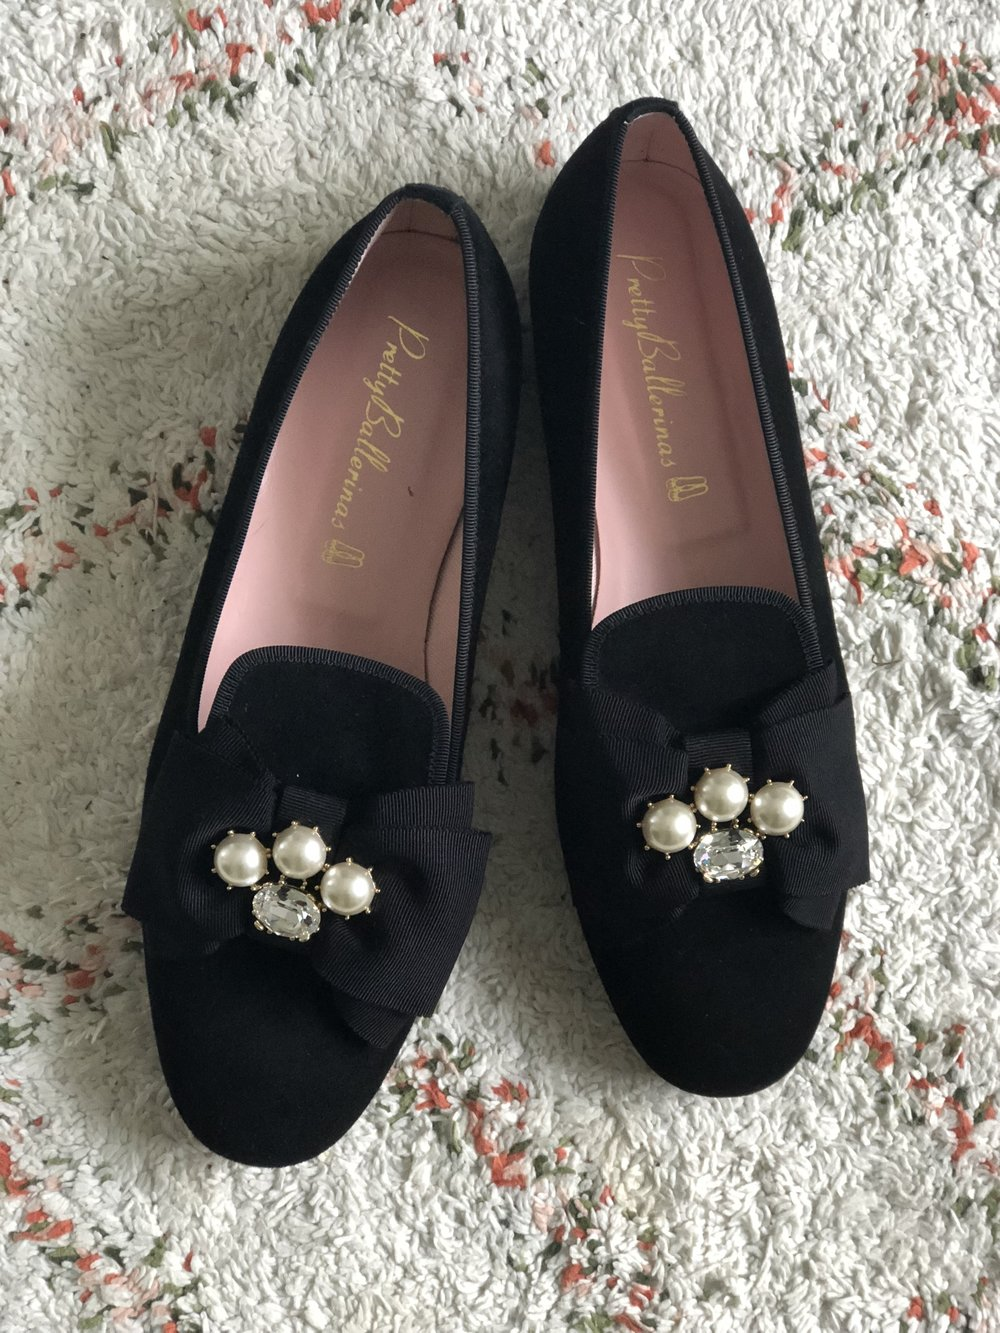 Loafers from  pretty ballerinas  150 euros bought on sale